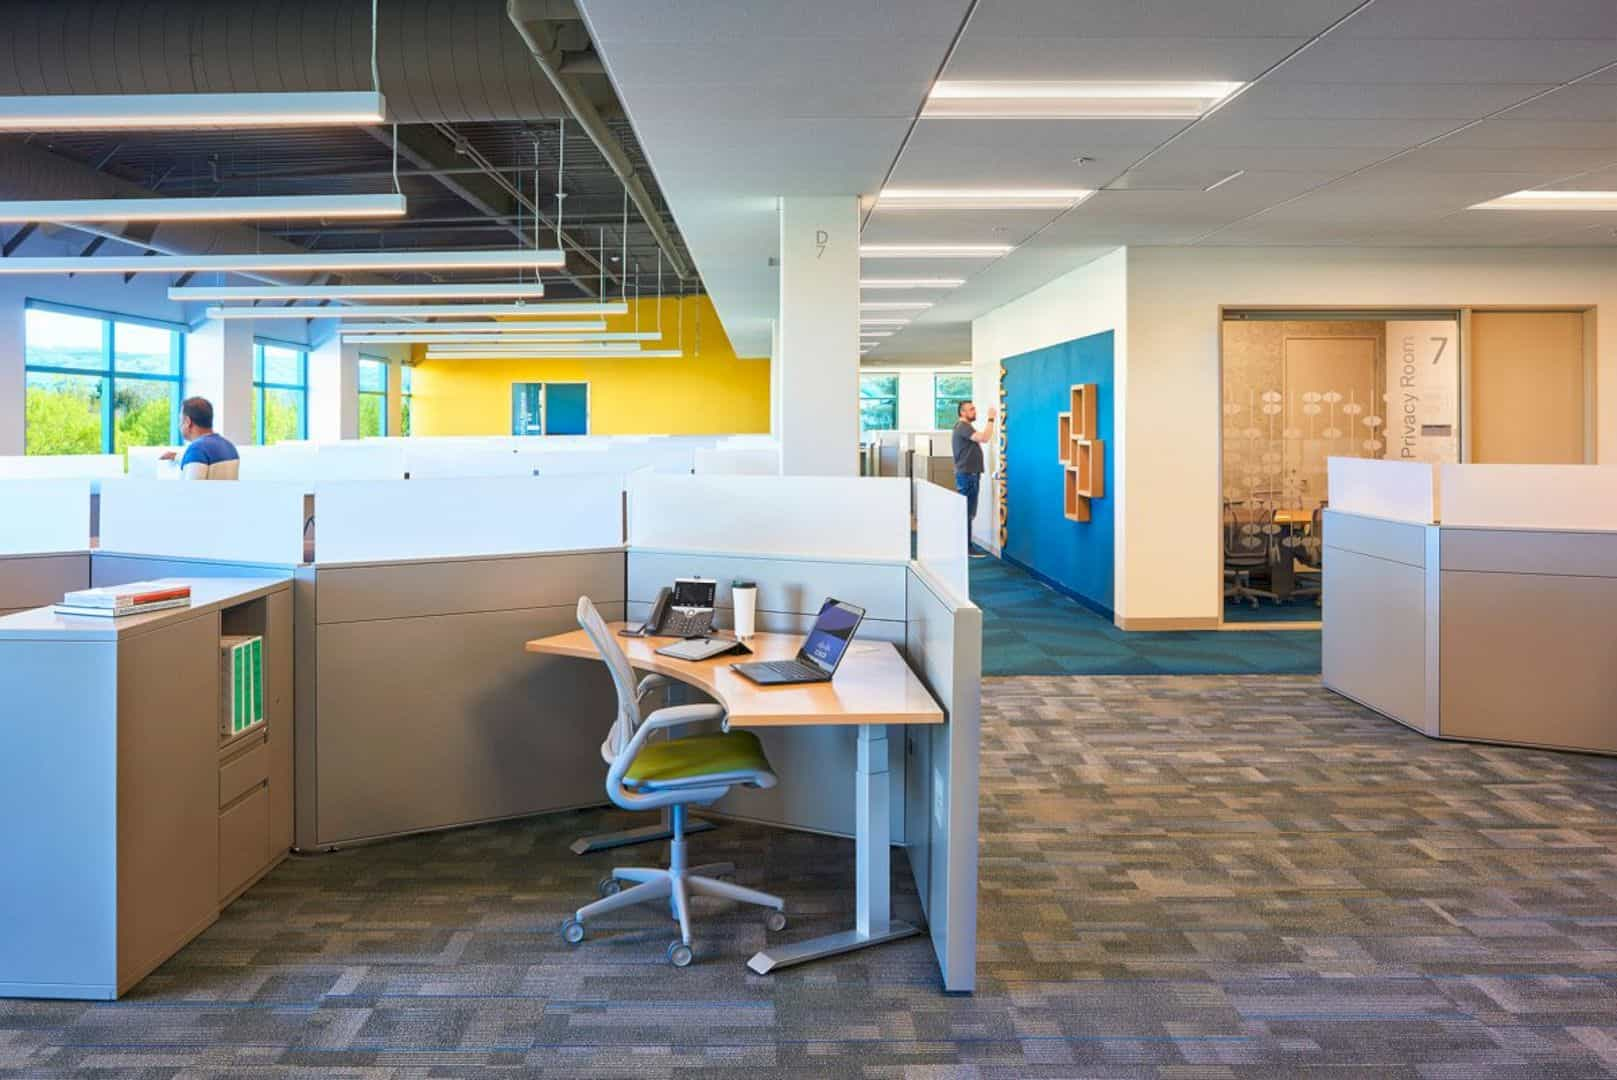 Cisco Systems Inc Building 11 A Diverse Office Landscape That Improves Capacity And Spatial Efficiency 7